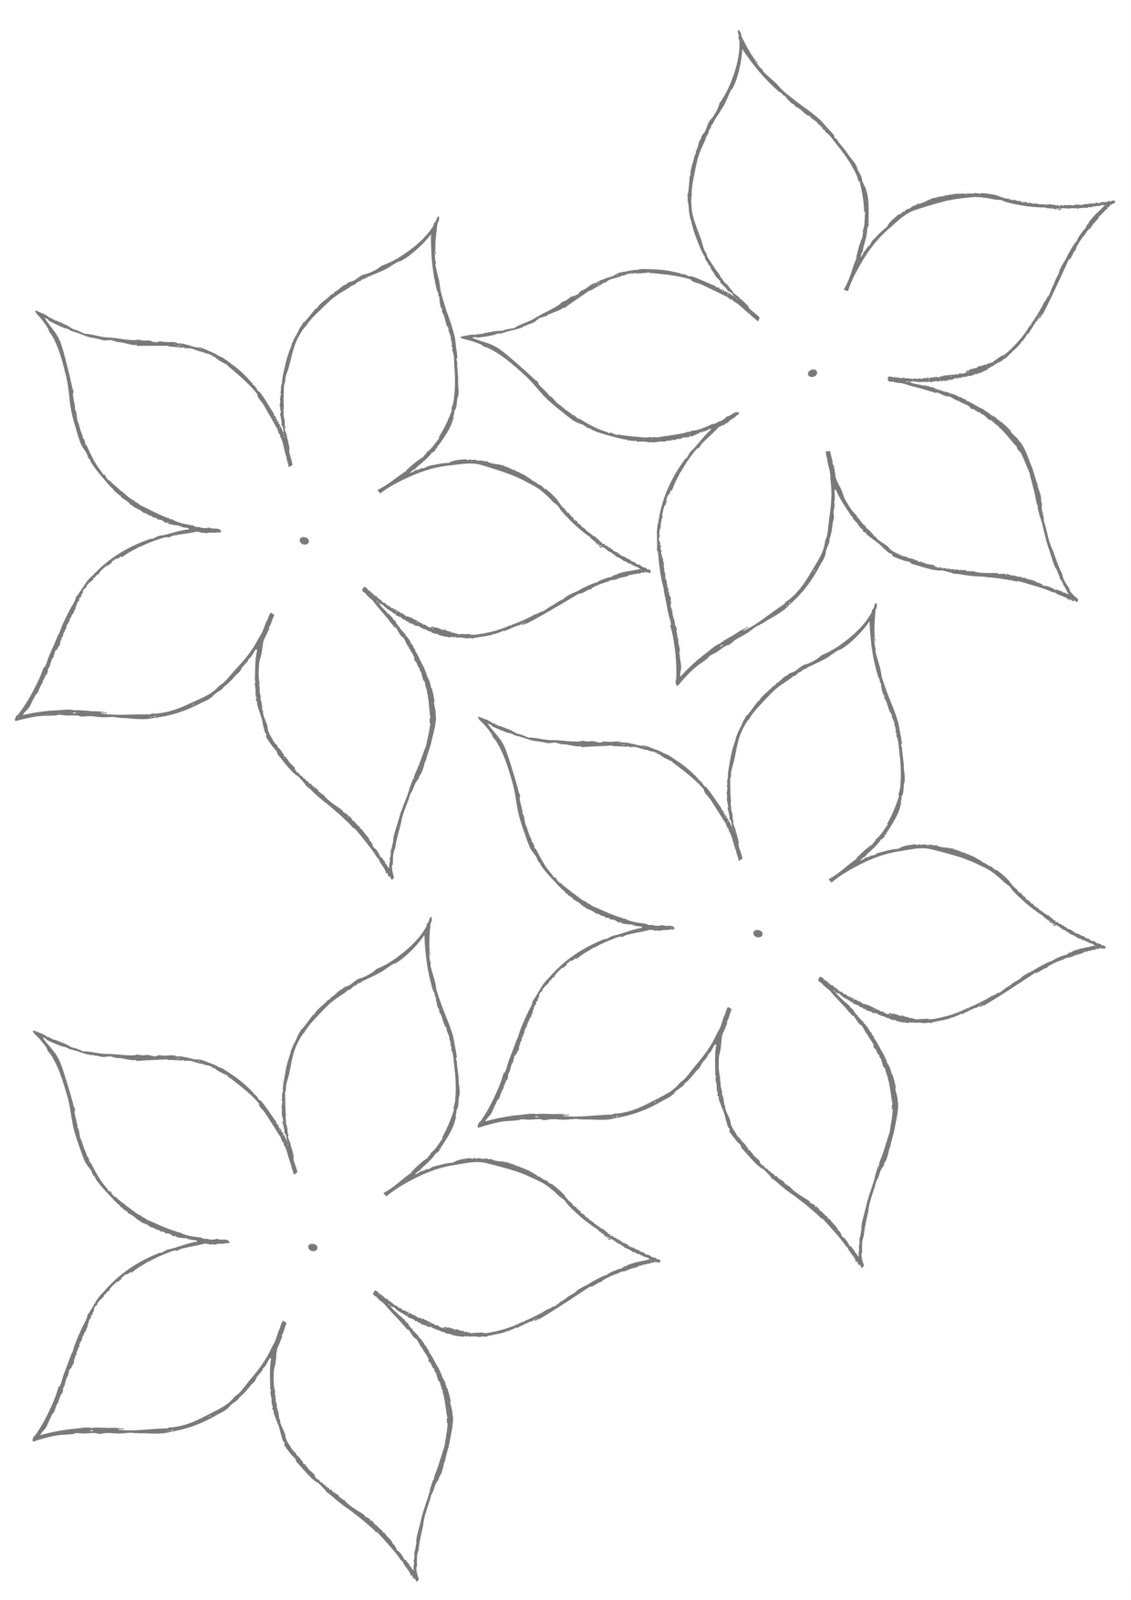 paper cut out templates flowers - flower template for children 39 s activities activity shelter